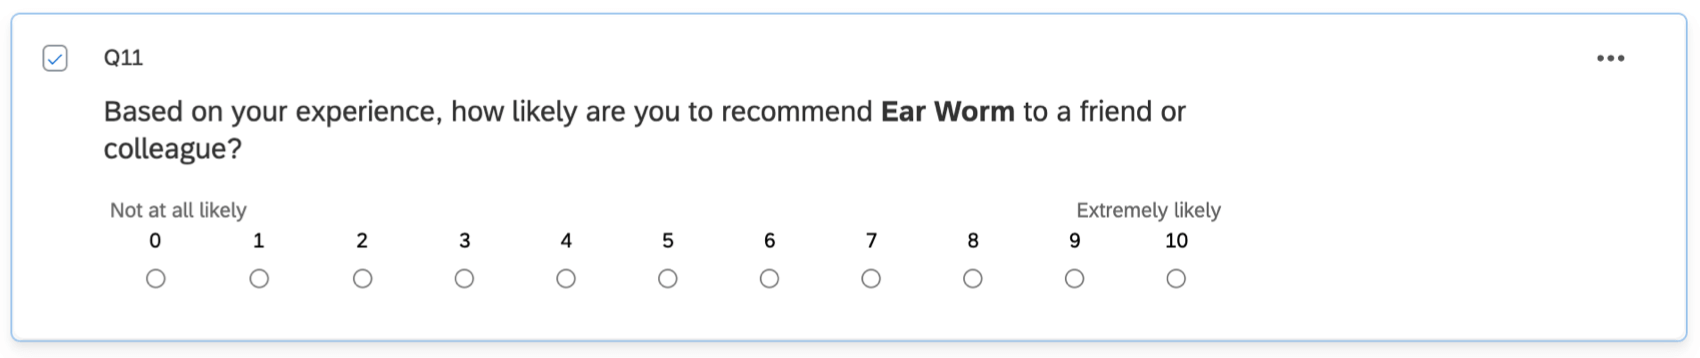 An NPS question, rating likelihood to recommend from 0 to 10